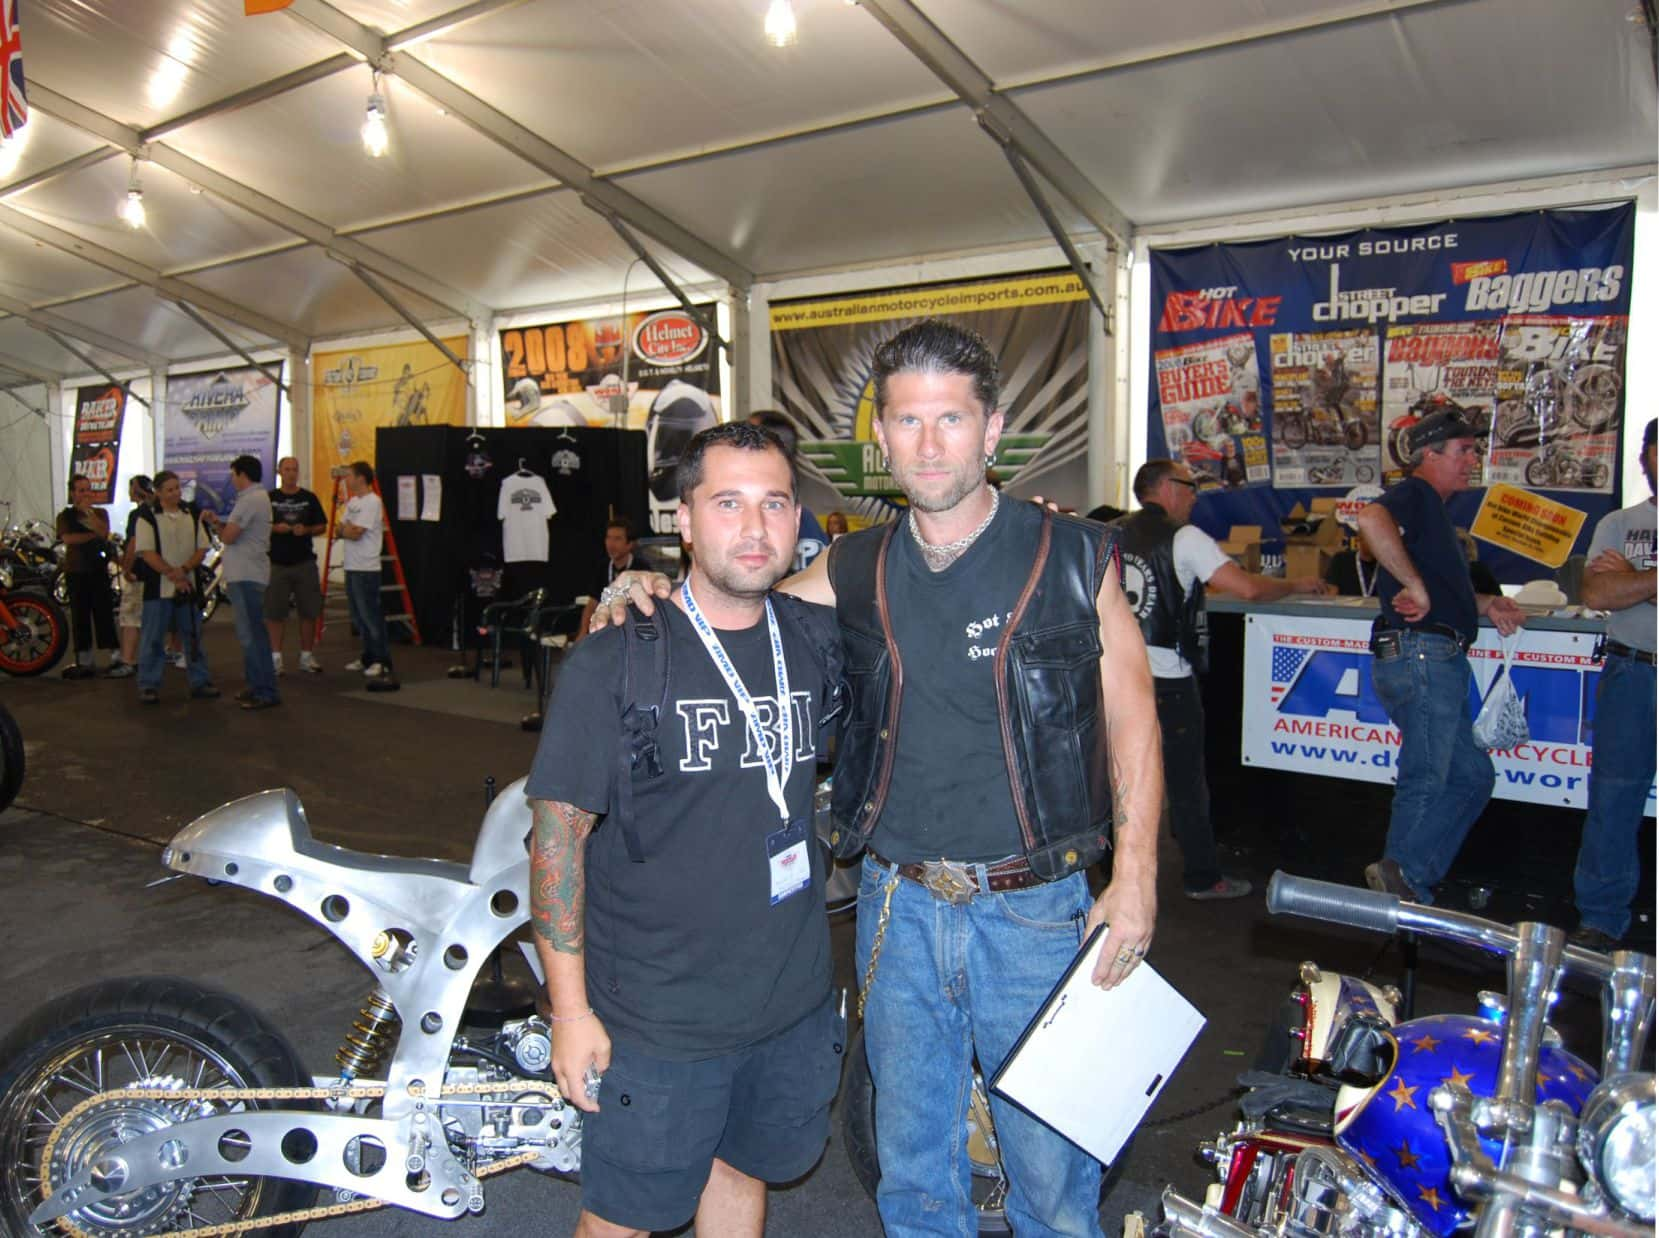 francisco ali manen - paul cox - indian larry